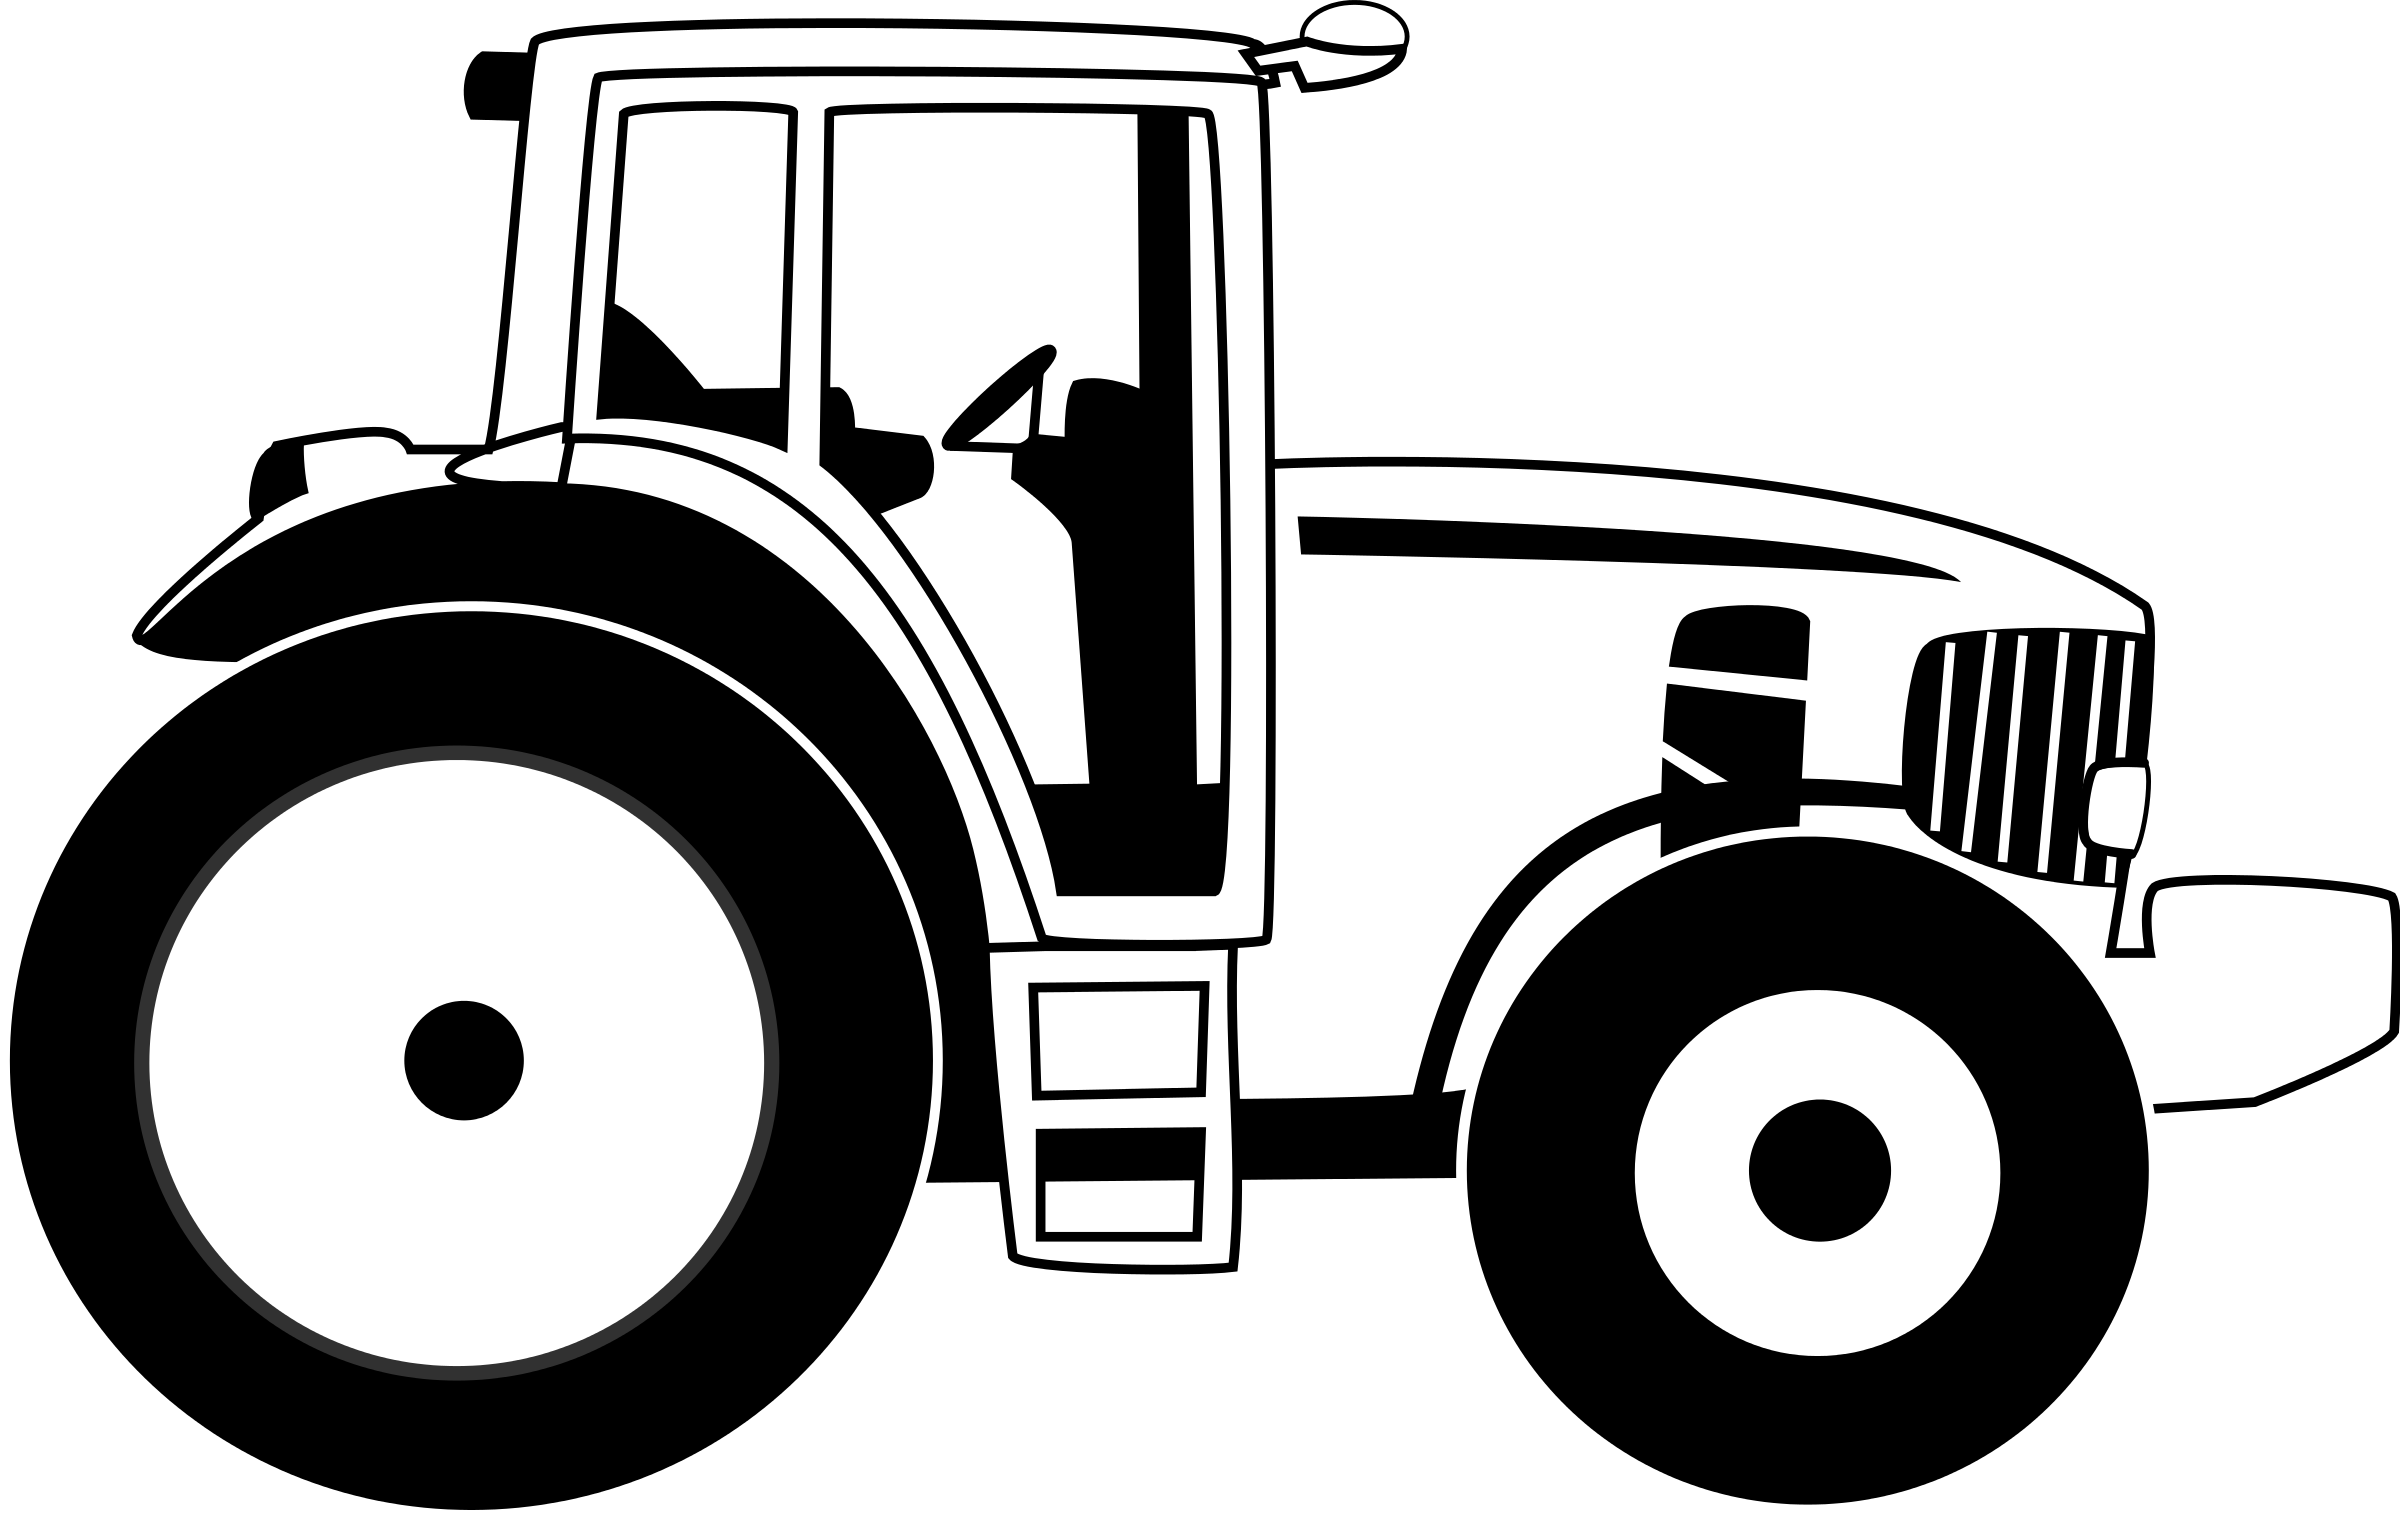 Tractor Clip Art Tractor Remix Png